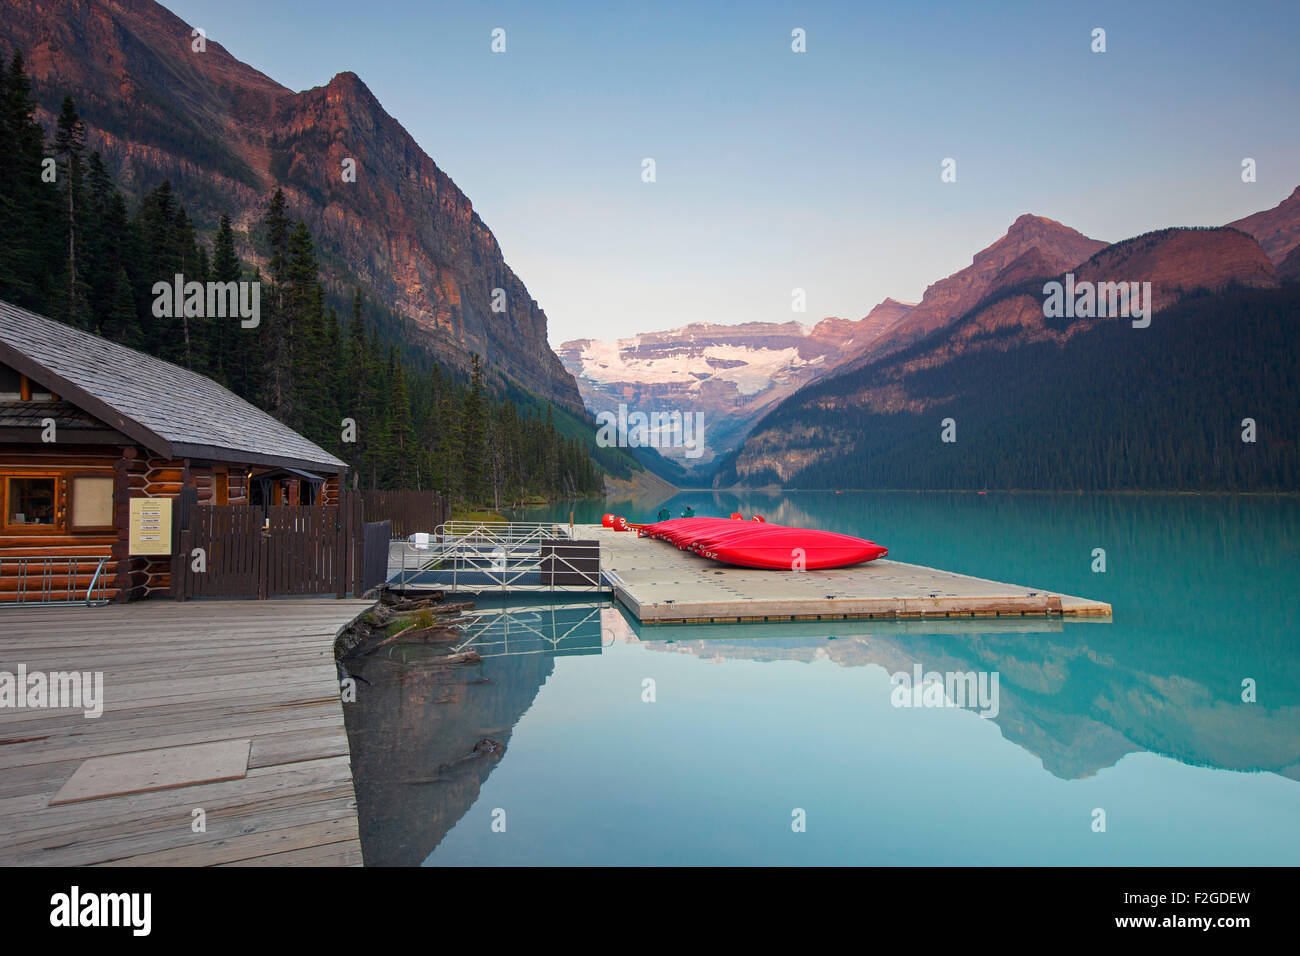 Canoës rouge au Lac glaciaire Louise avec Victoria Glacier, Banff National Park, Alberta, Canada Photo Stock